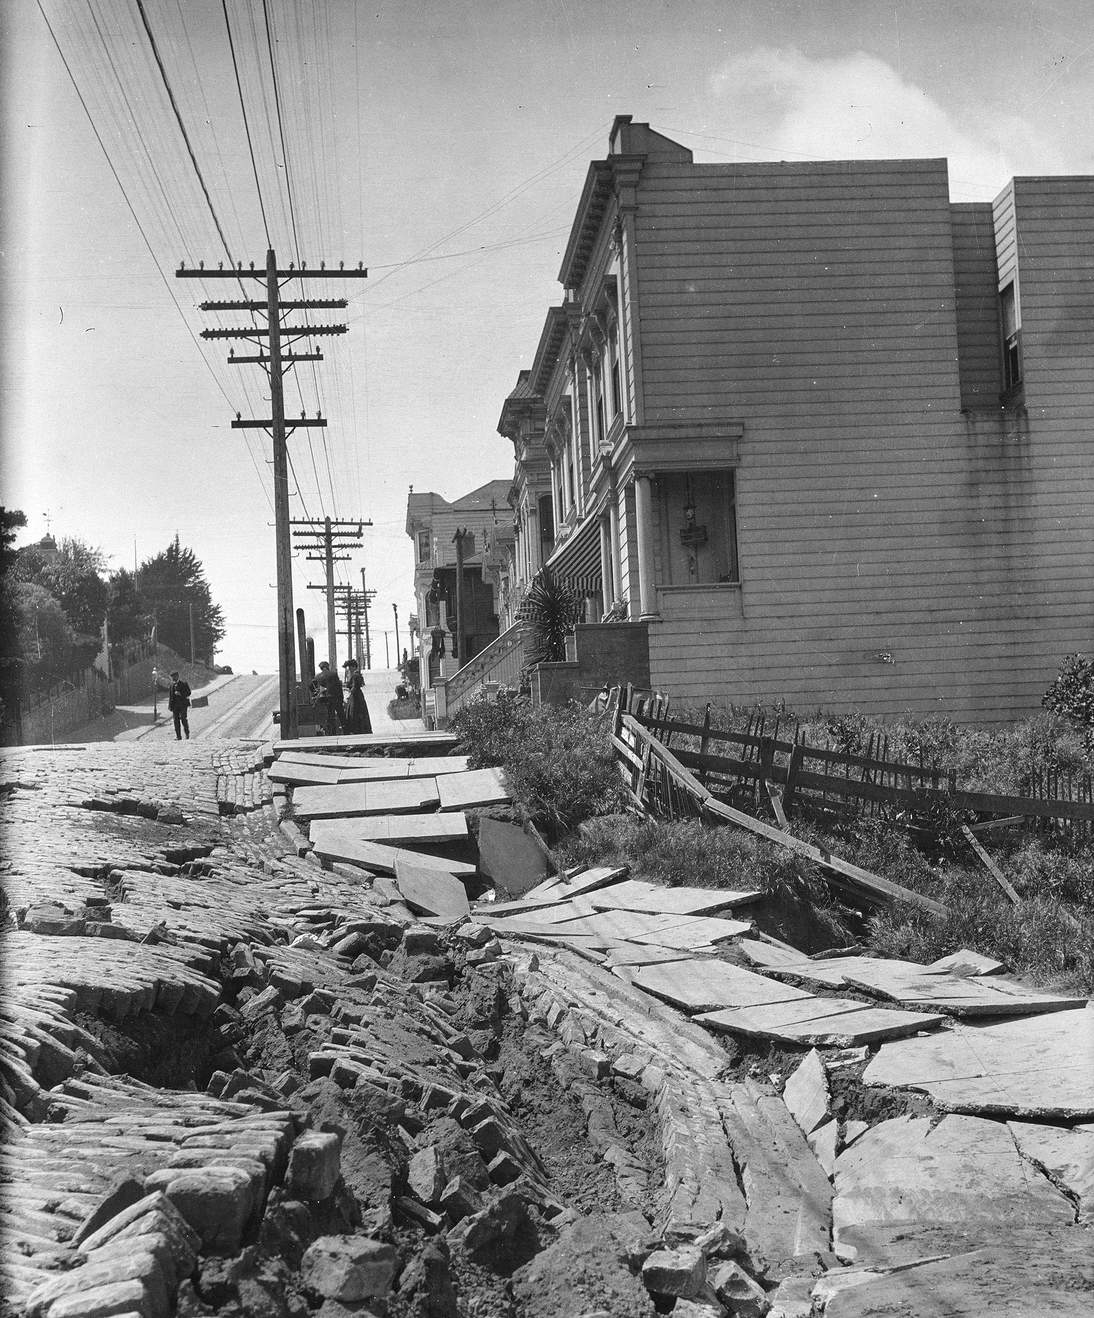 """Arnold Genthe, """"Untitled (Earthslip on San Francisco's Union Street)"""", 1906. Cellulose nitrate negative. Fine Arts Museums of San Francisco, Museum purchase, James D. Phelan Bequest Fund. 1943.407.6.1"""